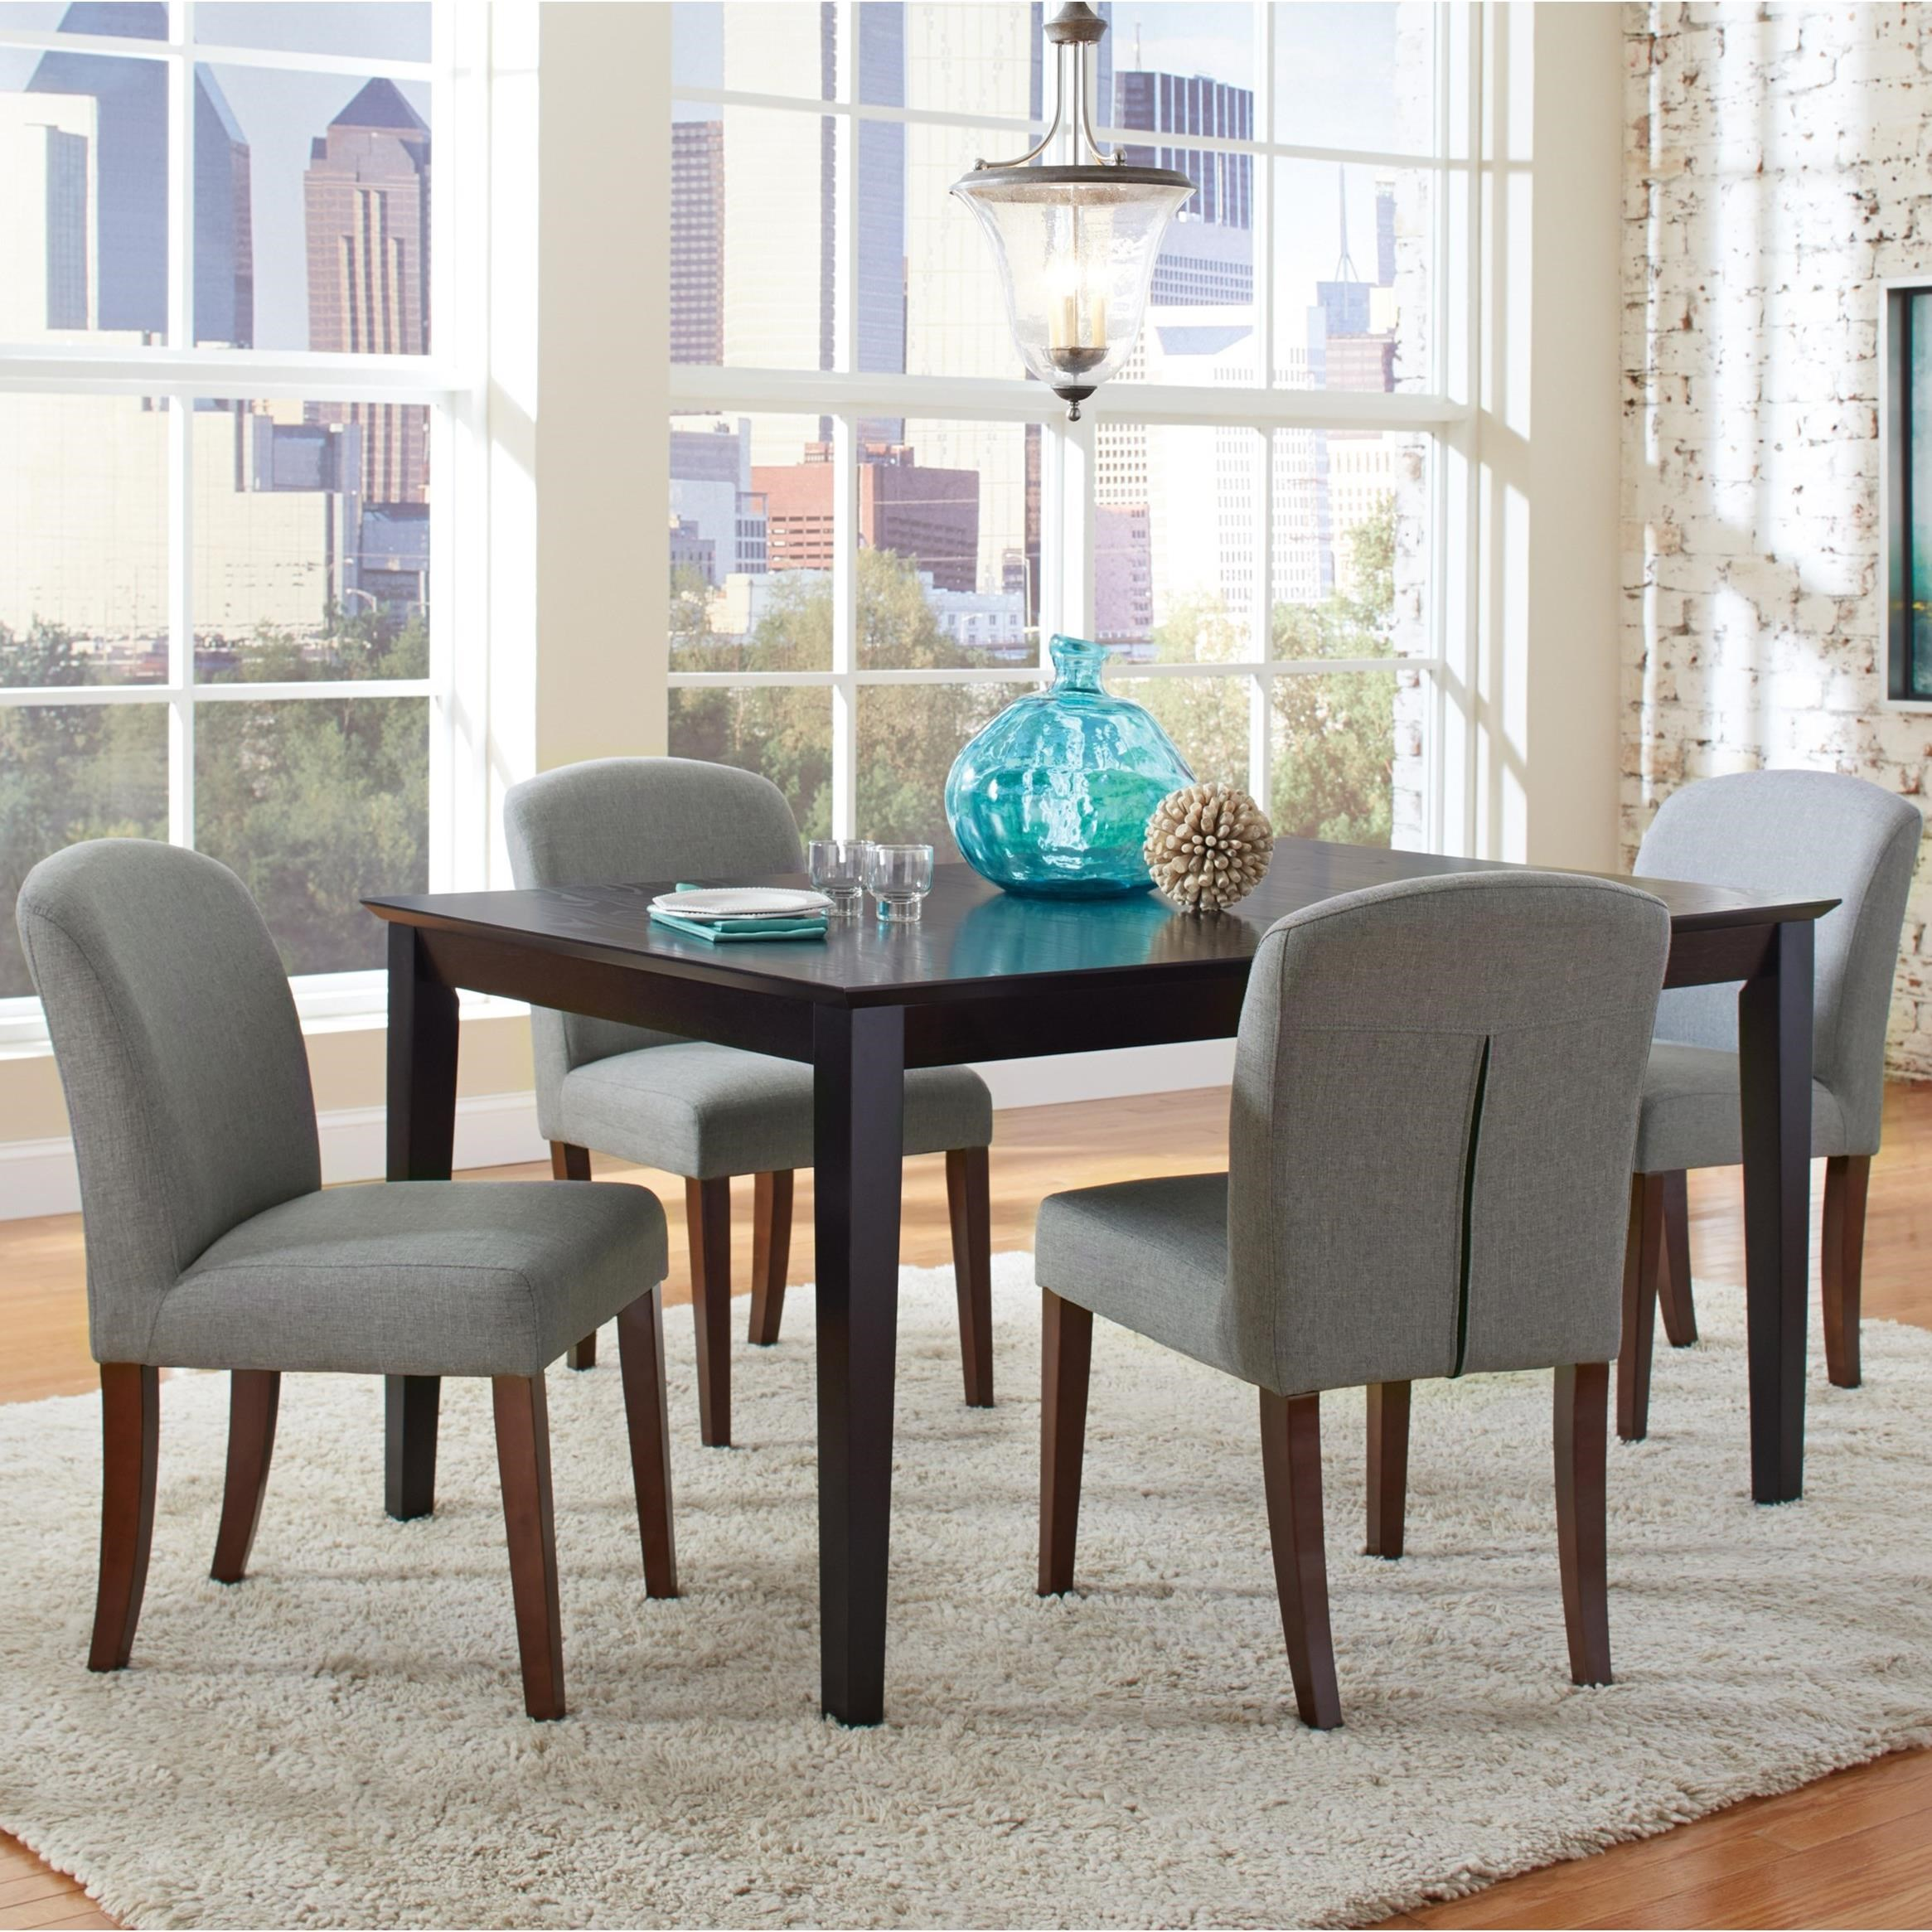 Dining Room Set For 4: Coaster Louise Transitional Table And Four Chair Set